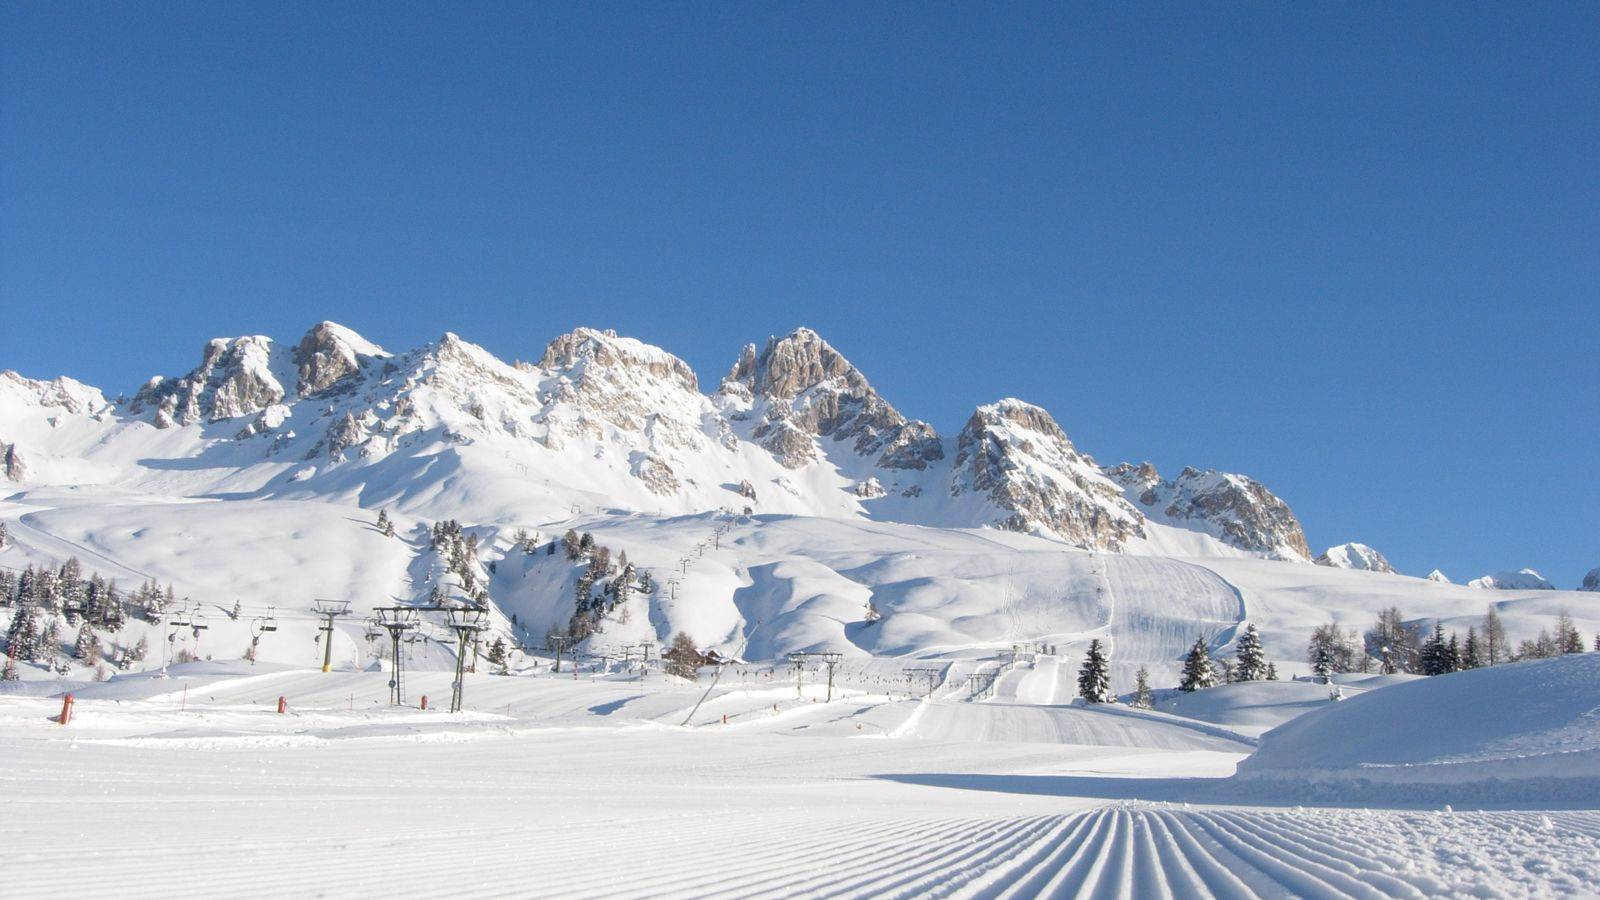 The ski resort at Passo San Pellegrino during the winter season